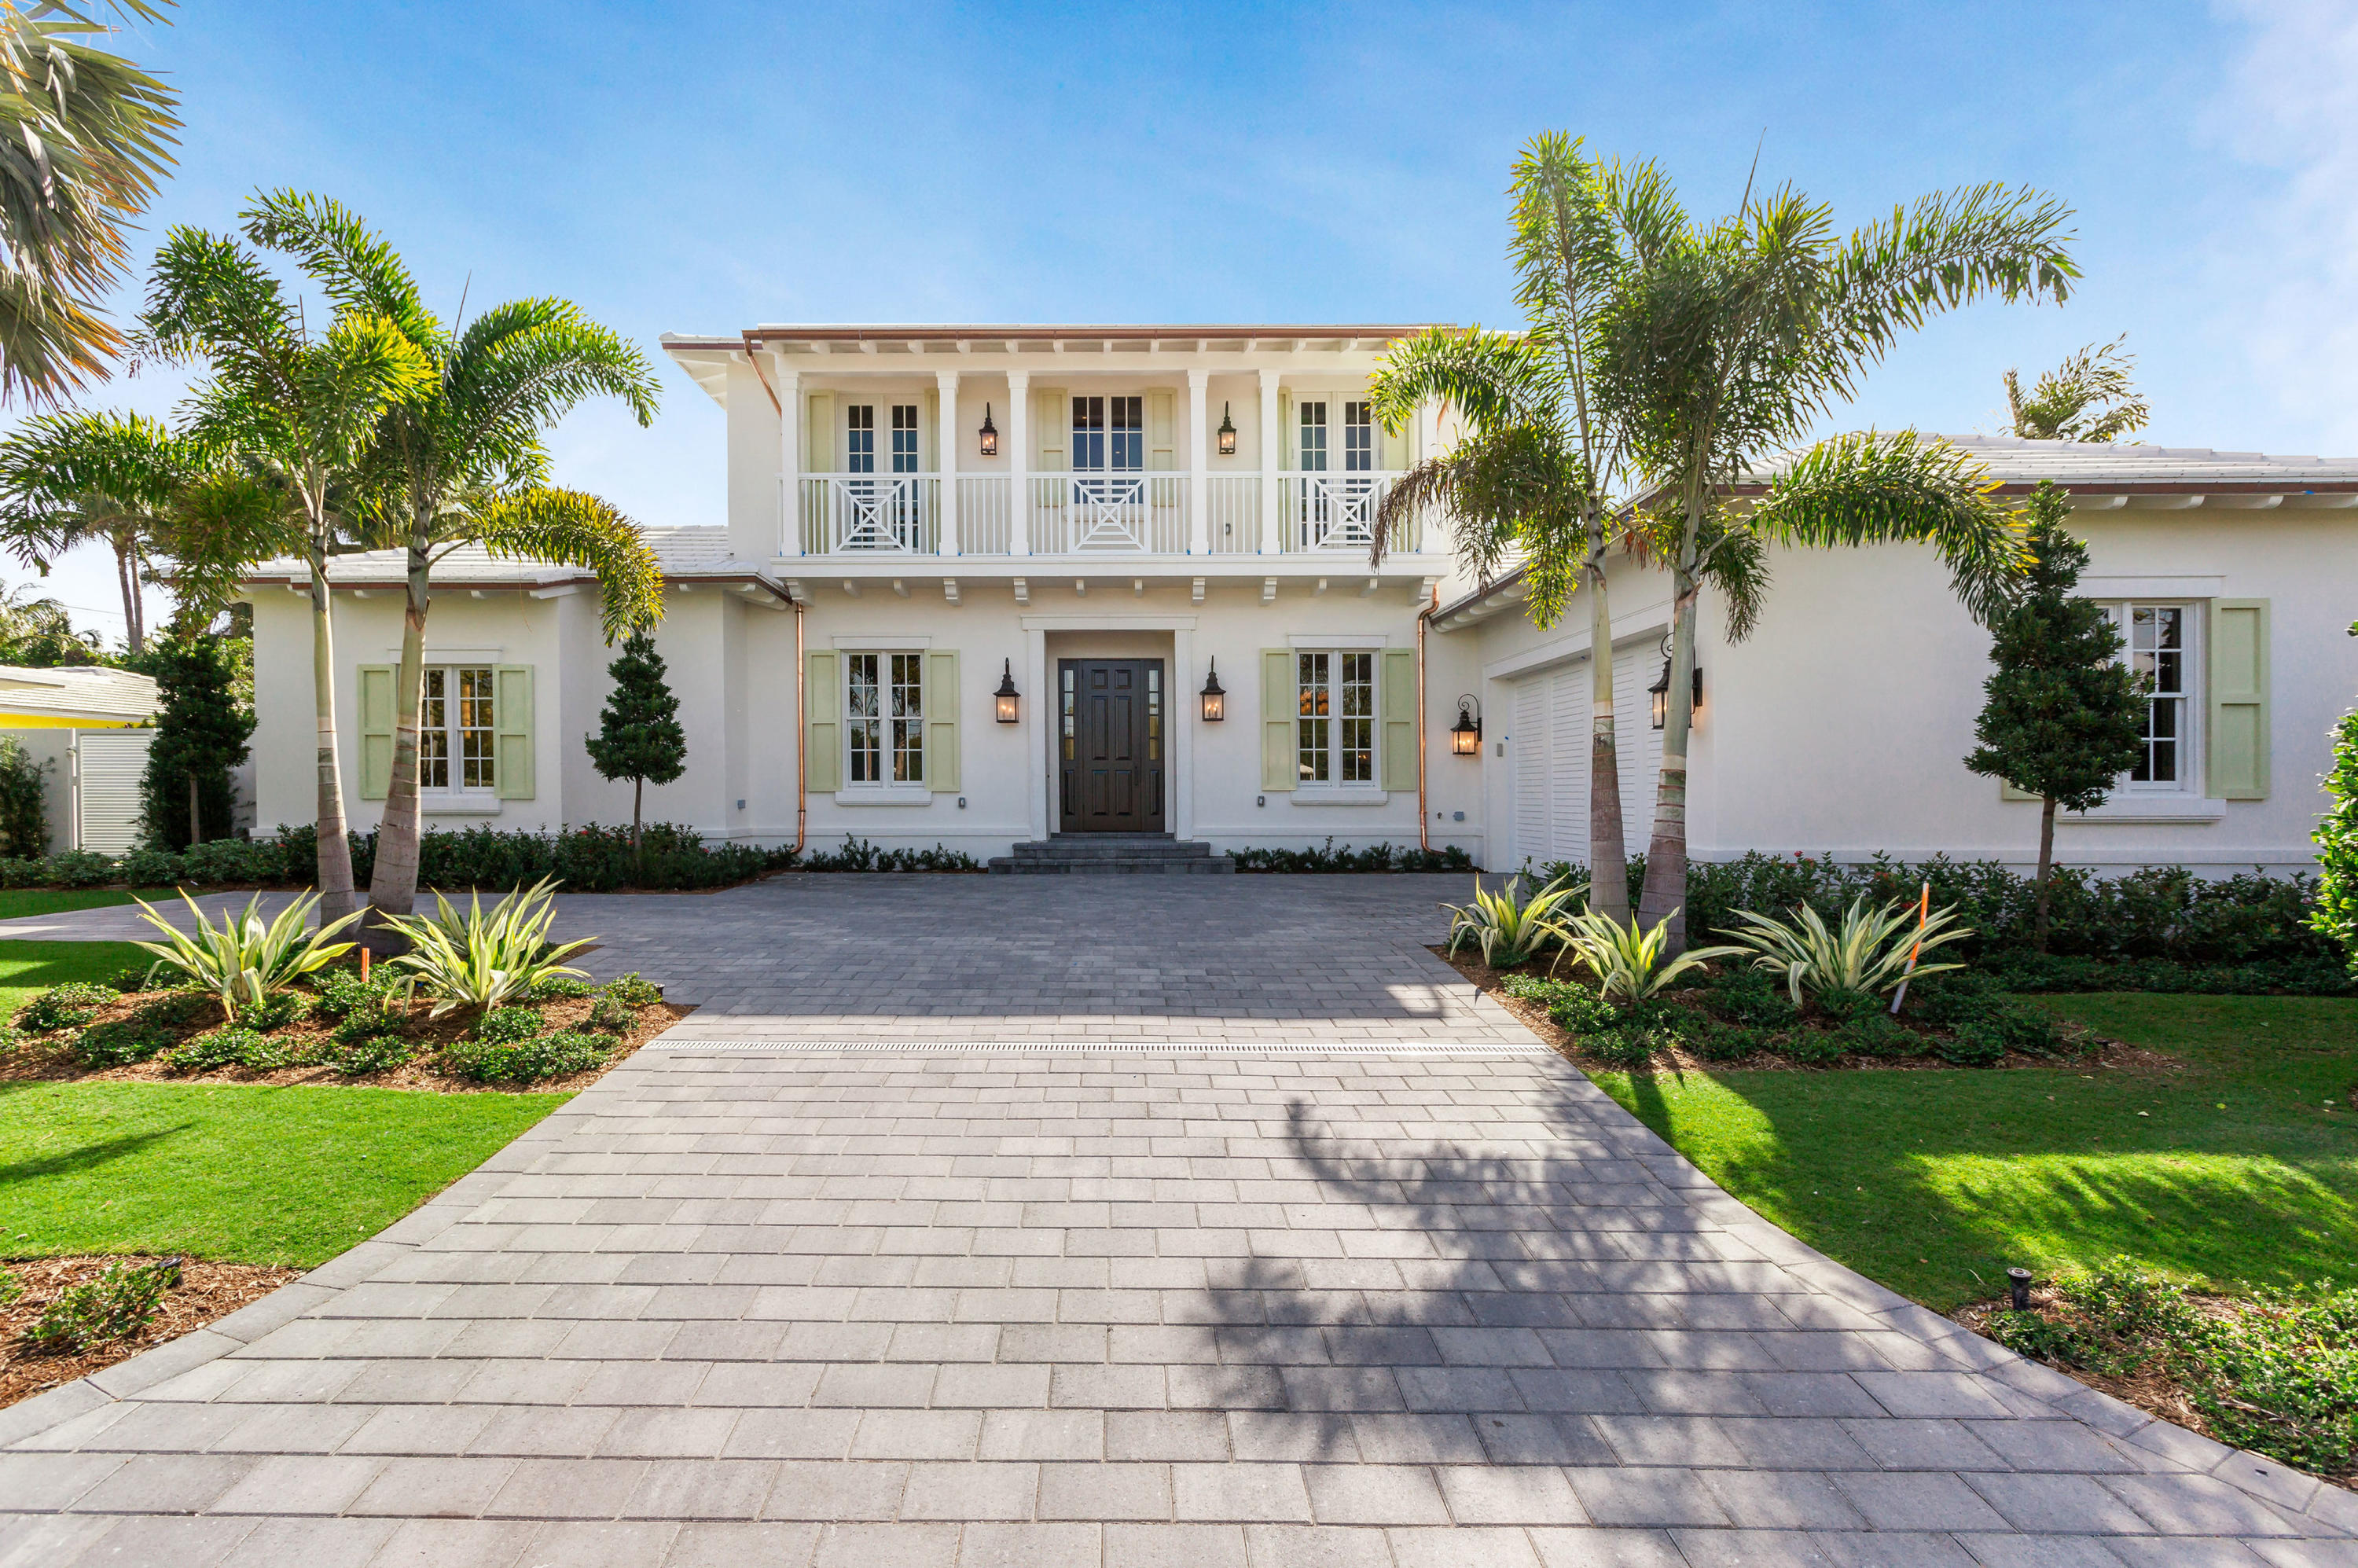 Home for sale in RAFALSKY MARK Palm Beach Florida